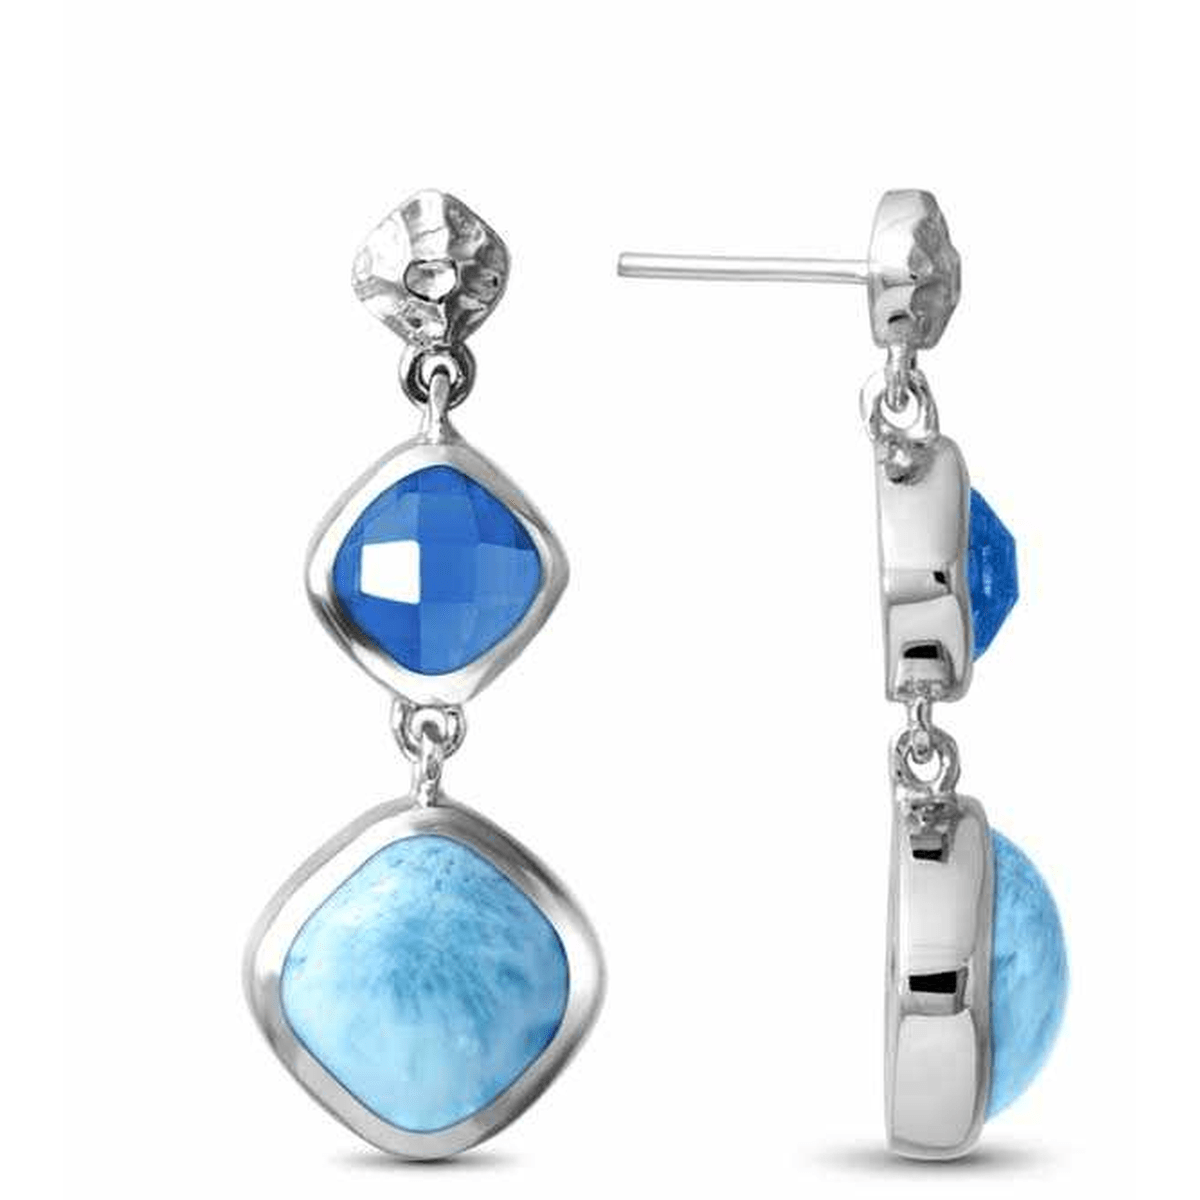 Faceta Earrings - Eface00-00-Marahlago Larimar-Renee Taylor Gallery